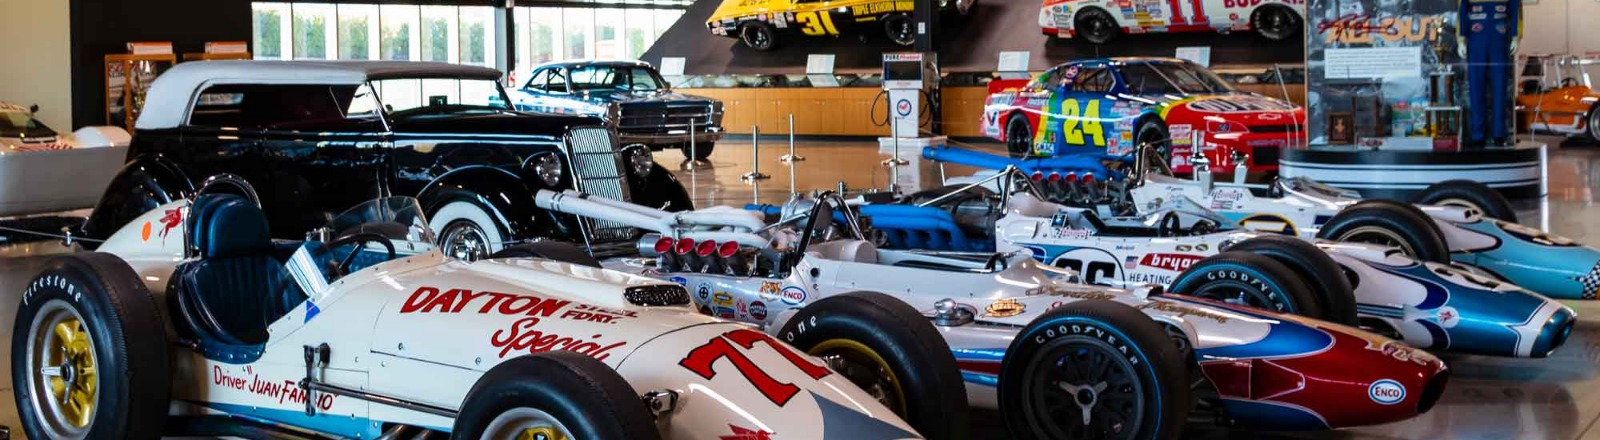 World of Speed Indy Car exhibit